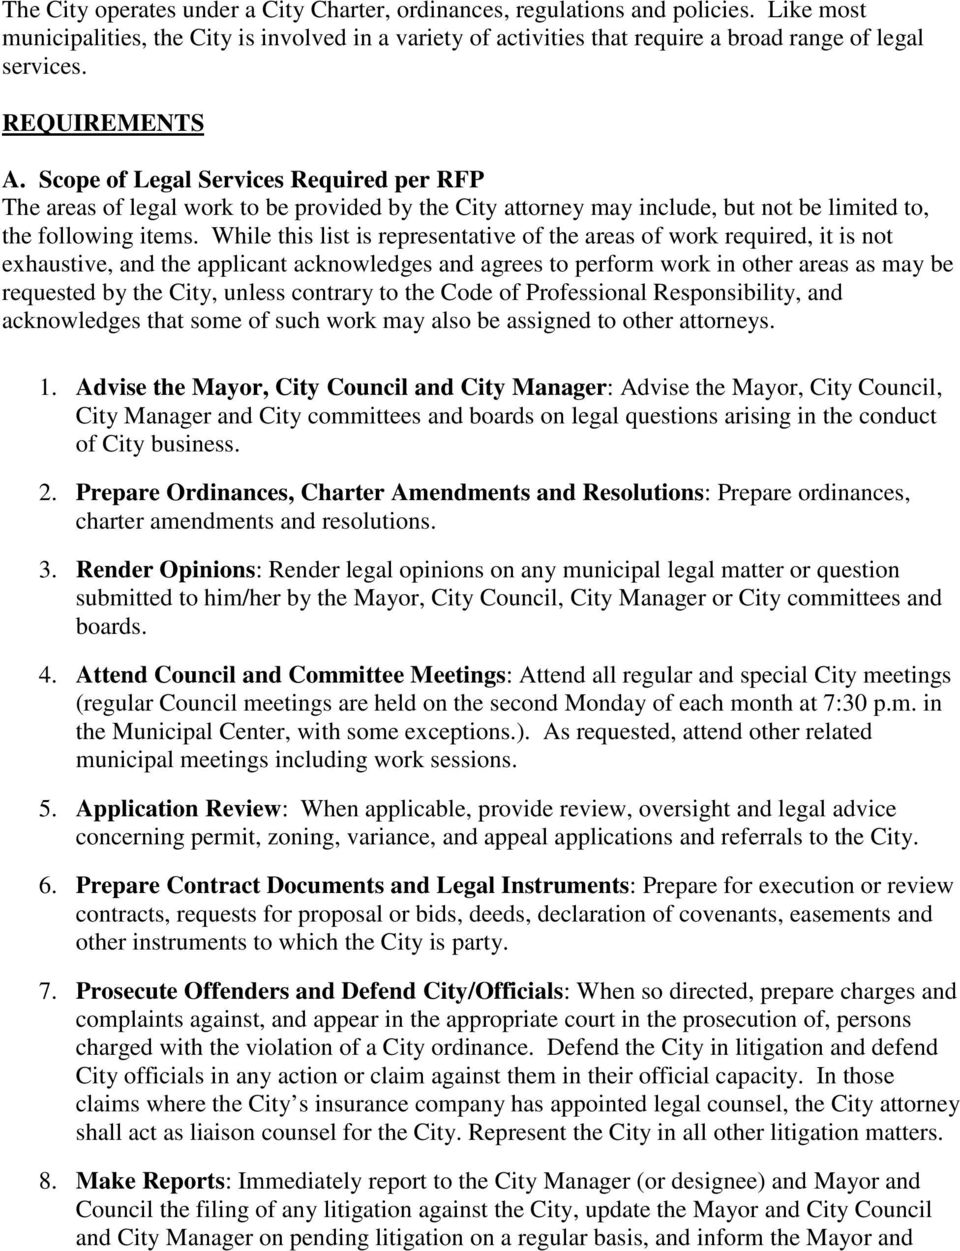 While this list is representative of the areas of work required, it is not exhaustive, and the applicant acknowledges and agrees to perform work in other areas as may be requested by the City, unless